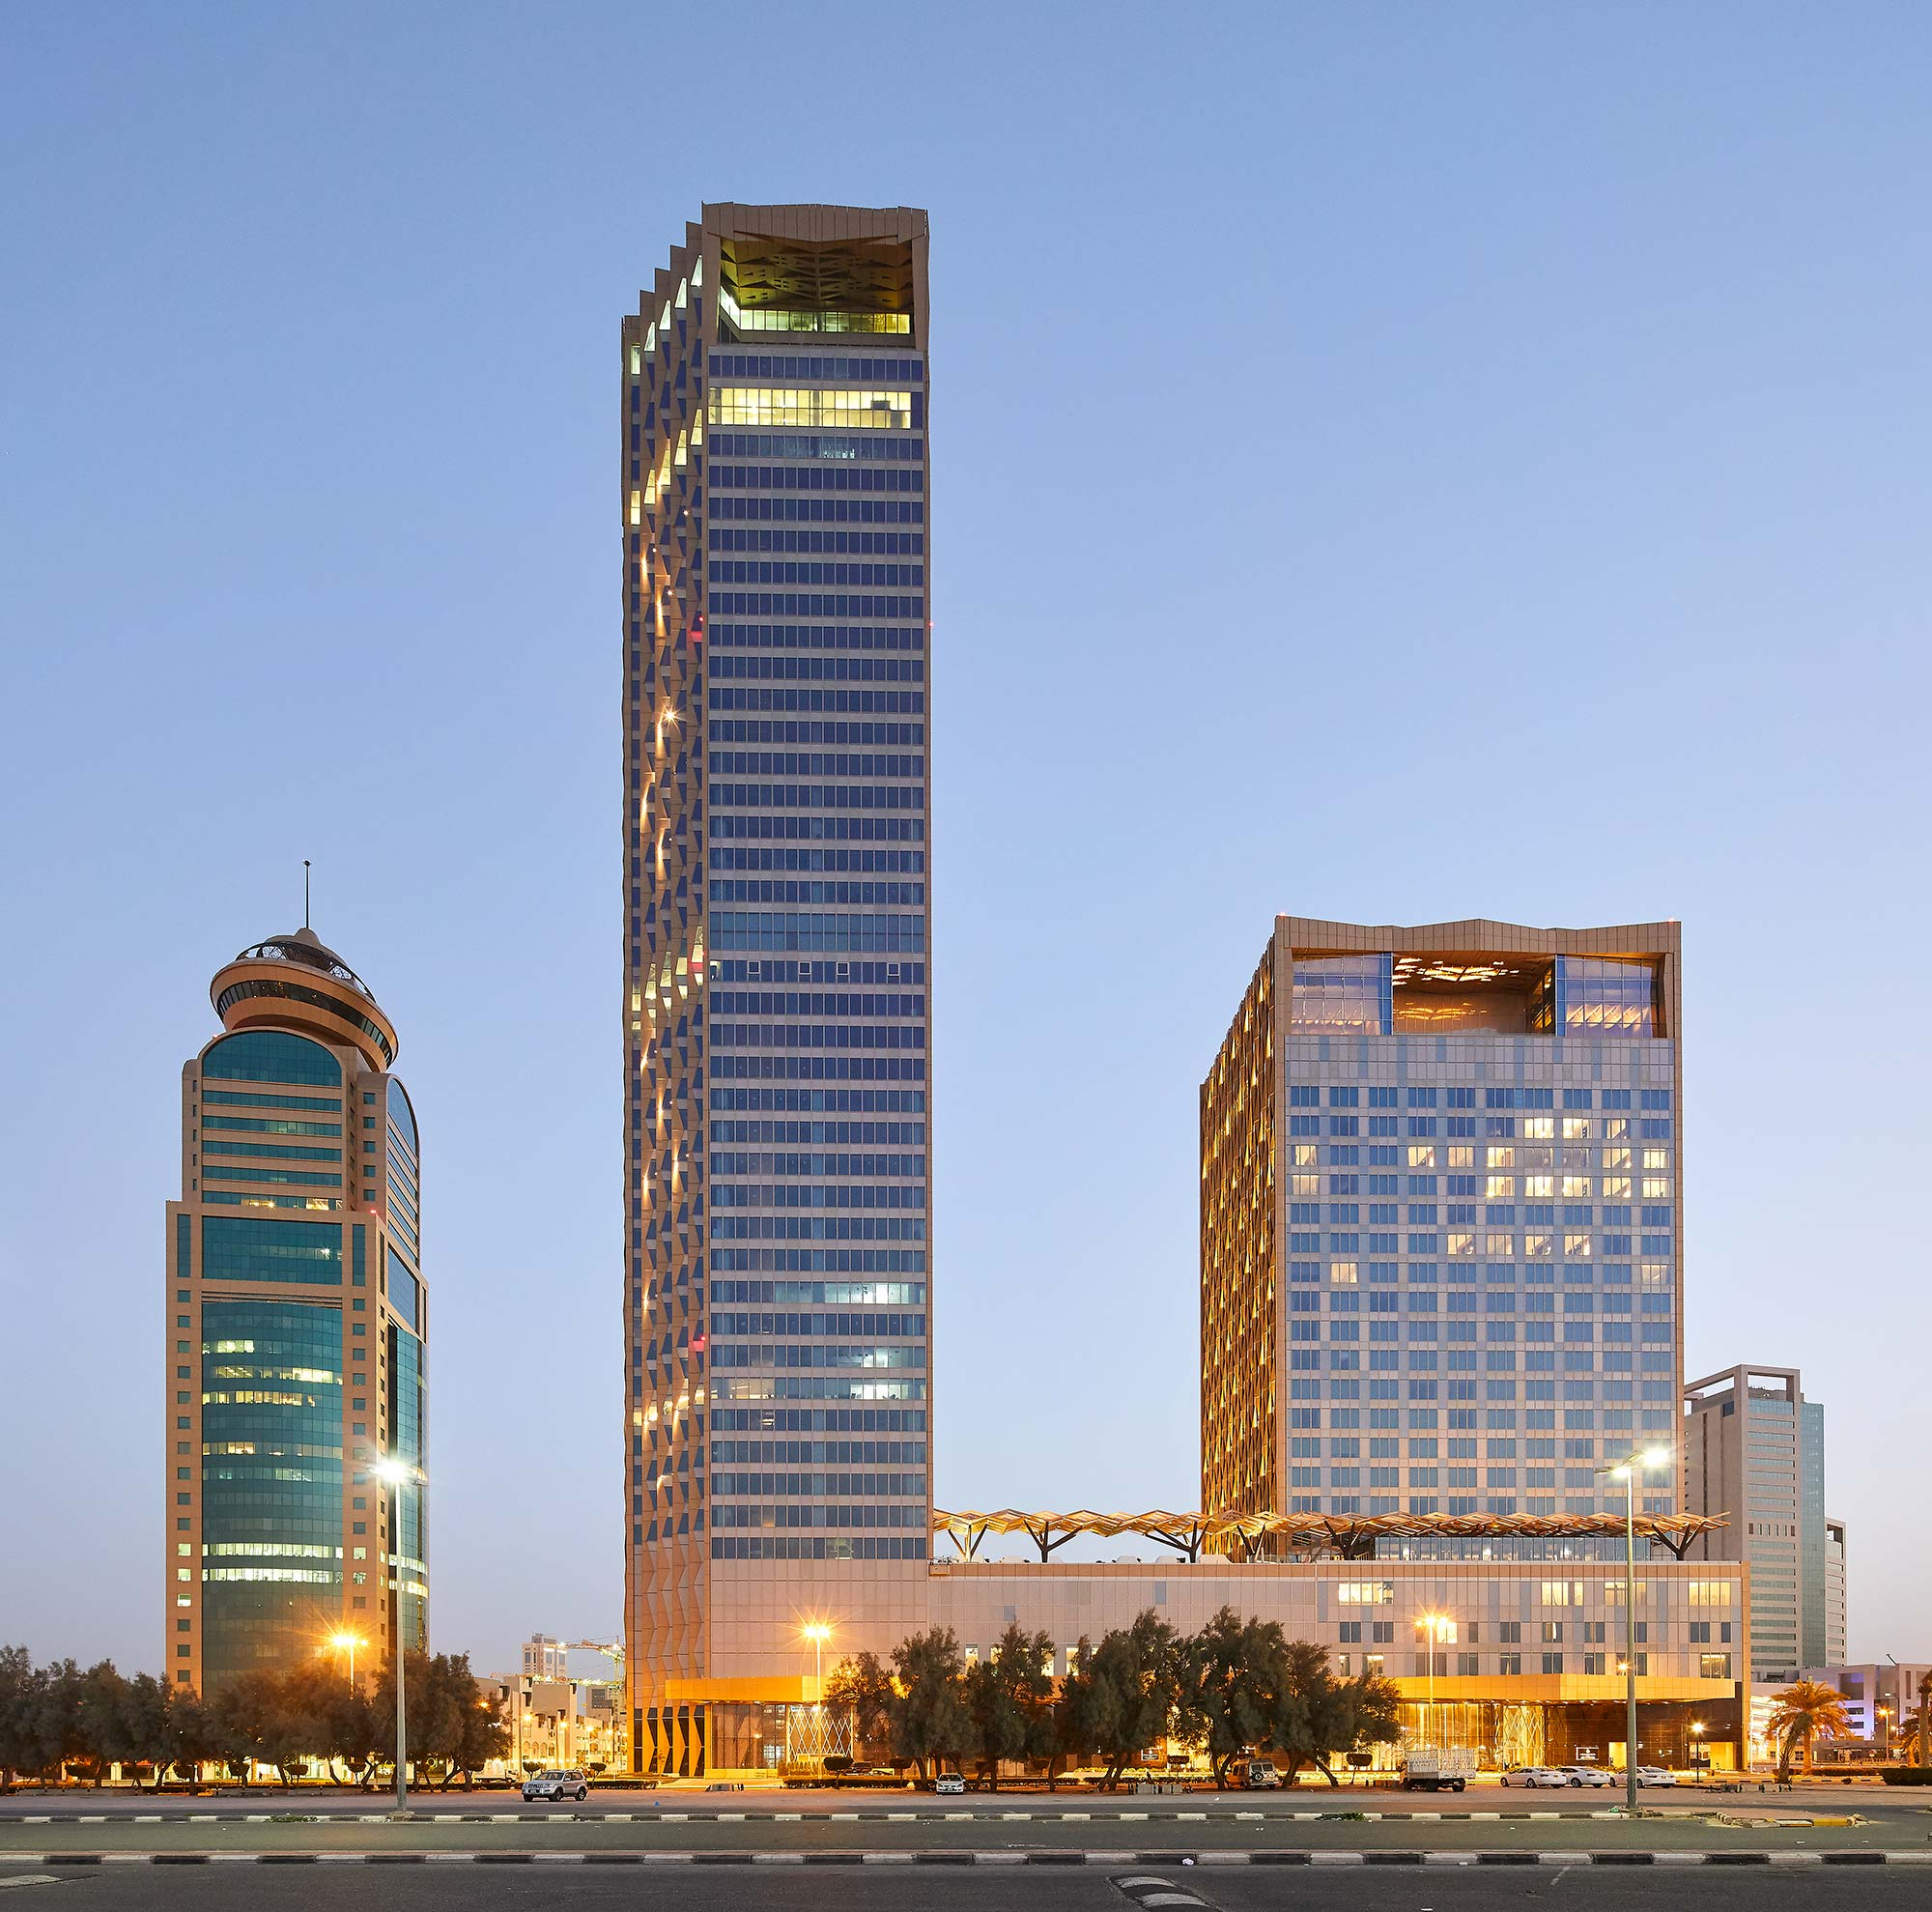 How Authenticity and Locality Shaped The Four Seasons Hotel Kuwait